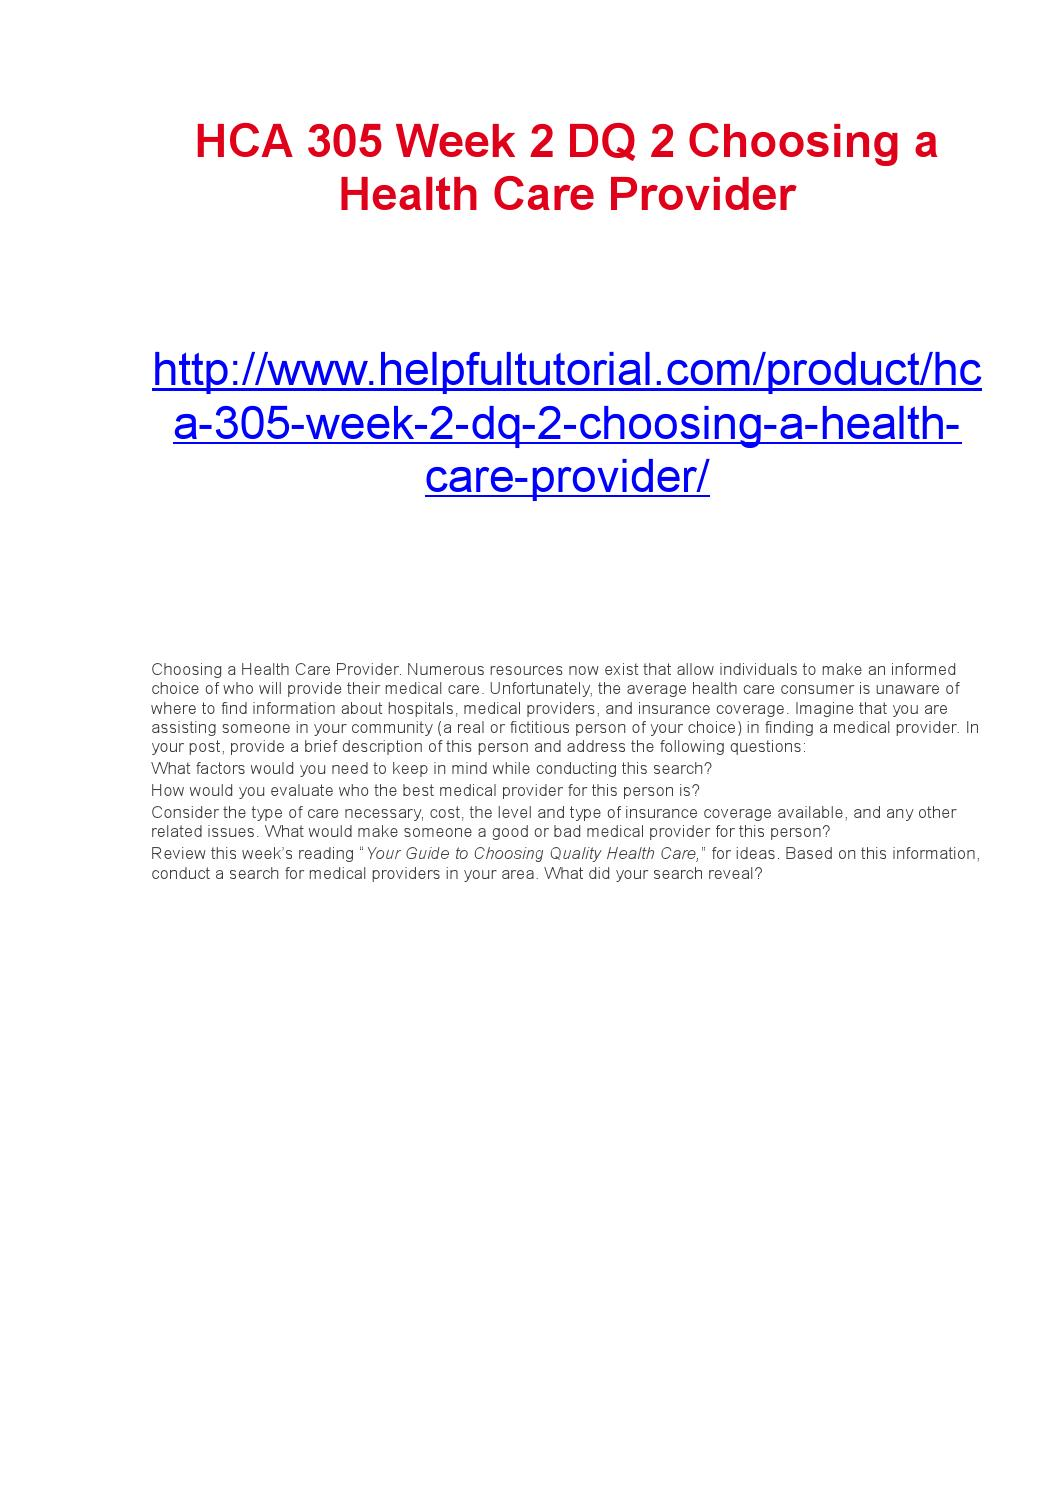 HCA 305 Complete Class The U.S. Health Care System